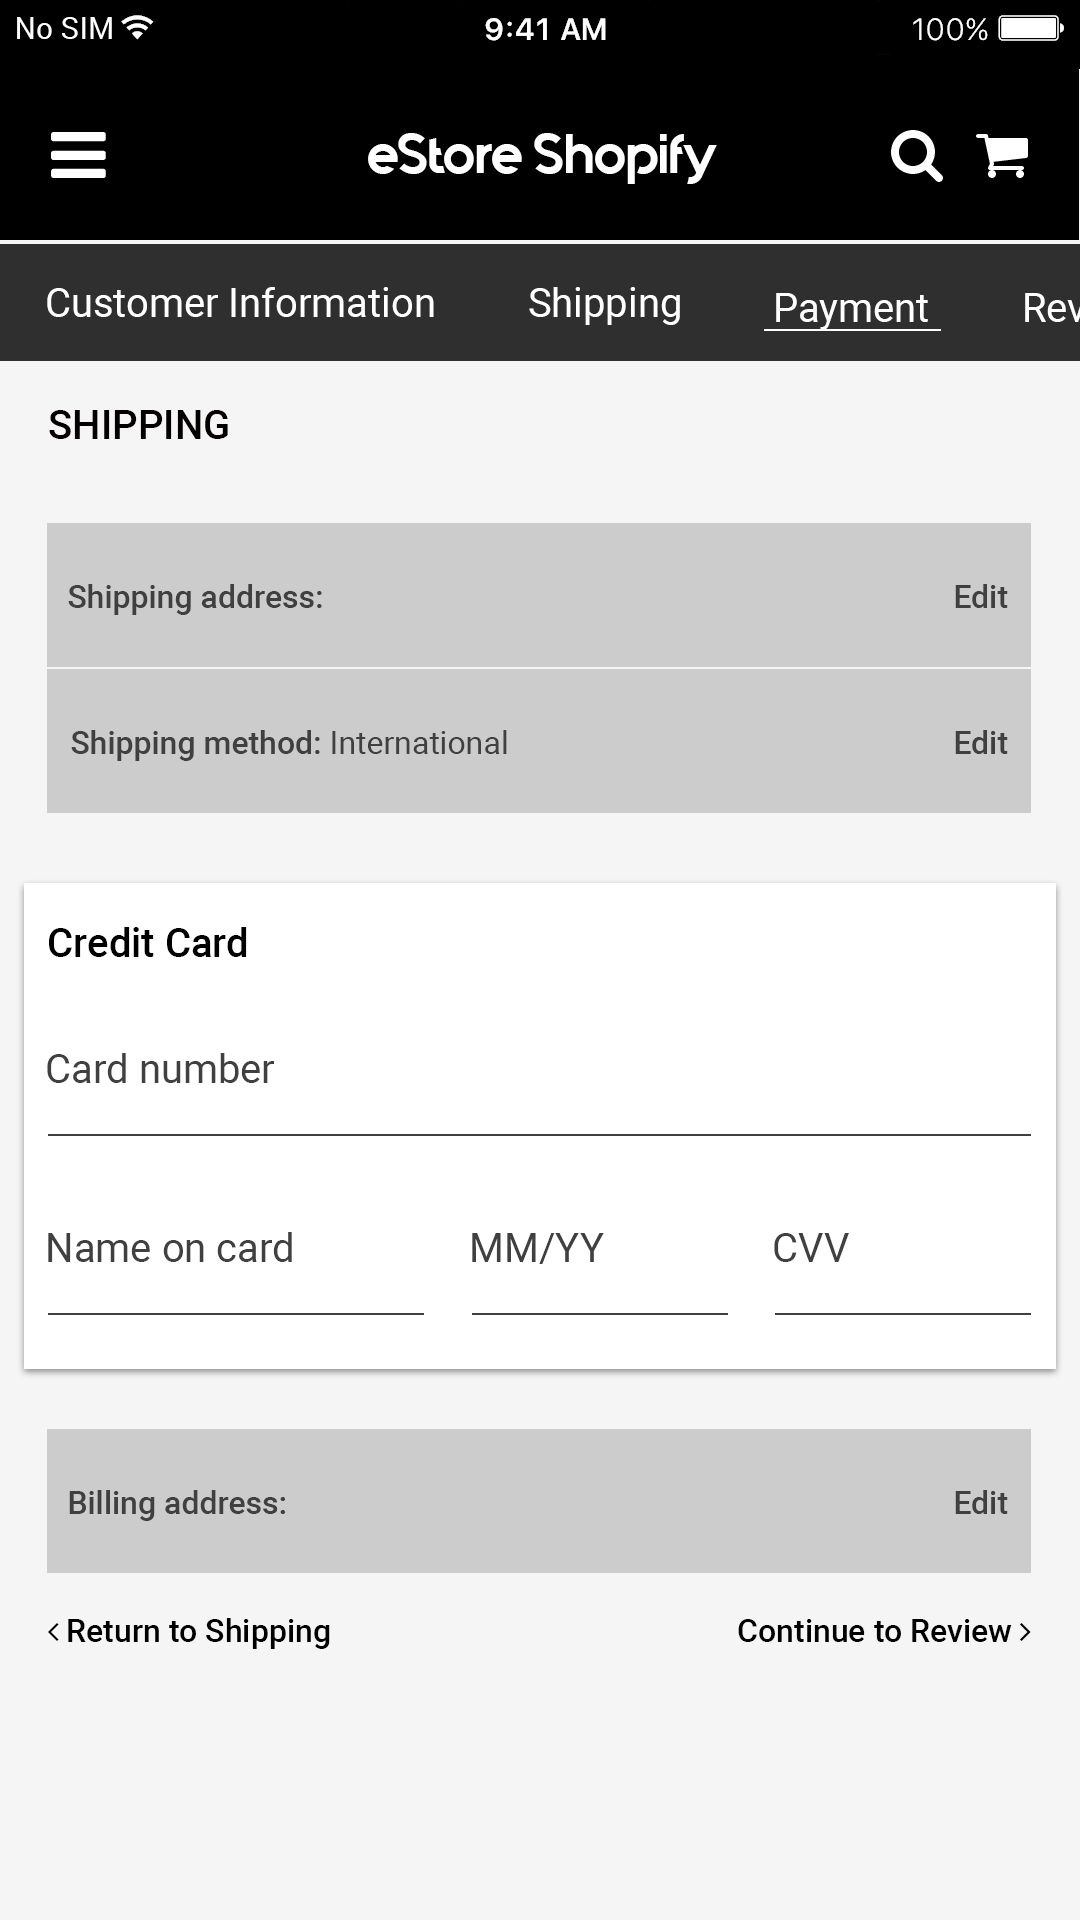 eStore Shopify - iOS App Source Code Screenshot 17